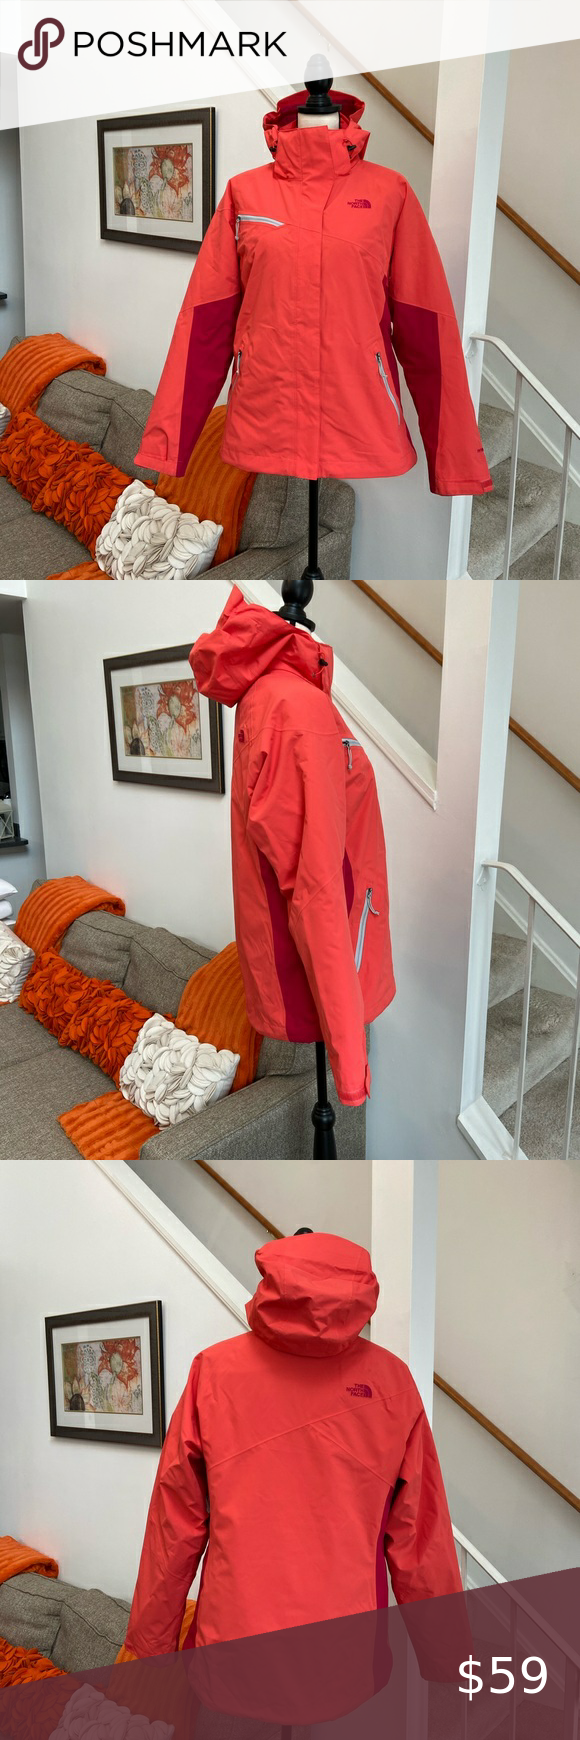 North Face 2 In 1 Jacket Guc The North Face 2 In 1 Jacket Size Large Comes From A Smoke And Pet Free Home Only Jackets Clothes Design Red Leather Jacket [ 1740 x 580 Pixel ]